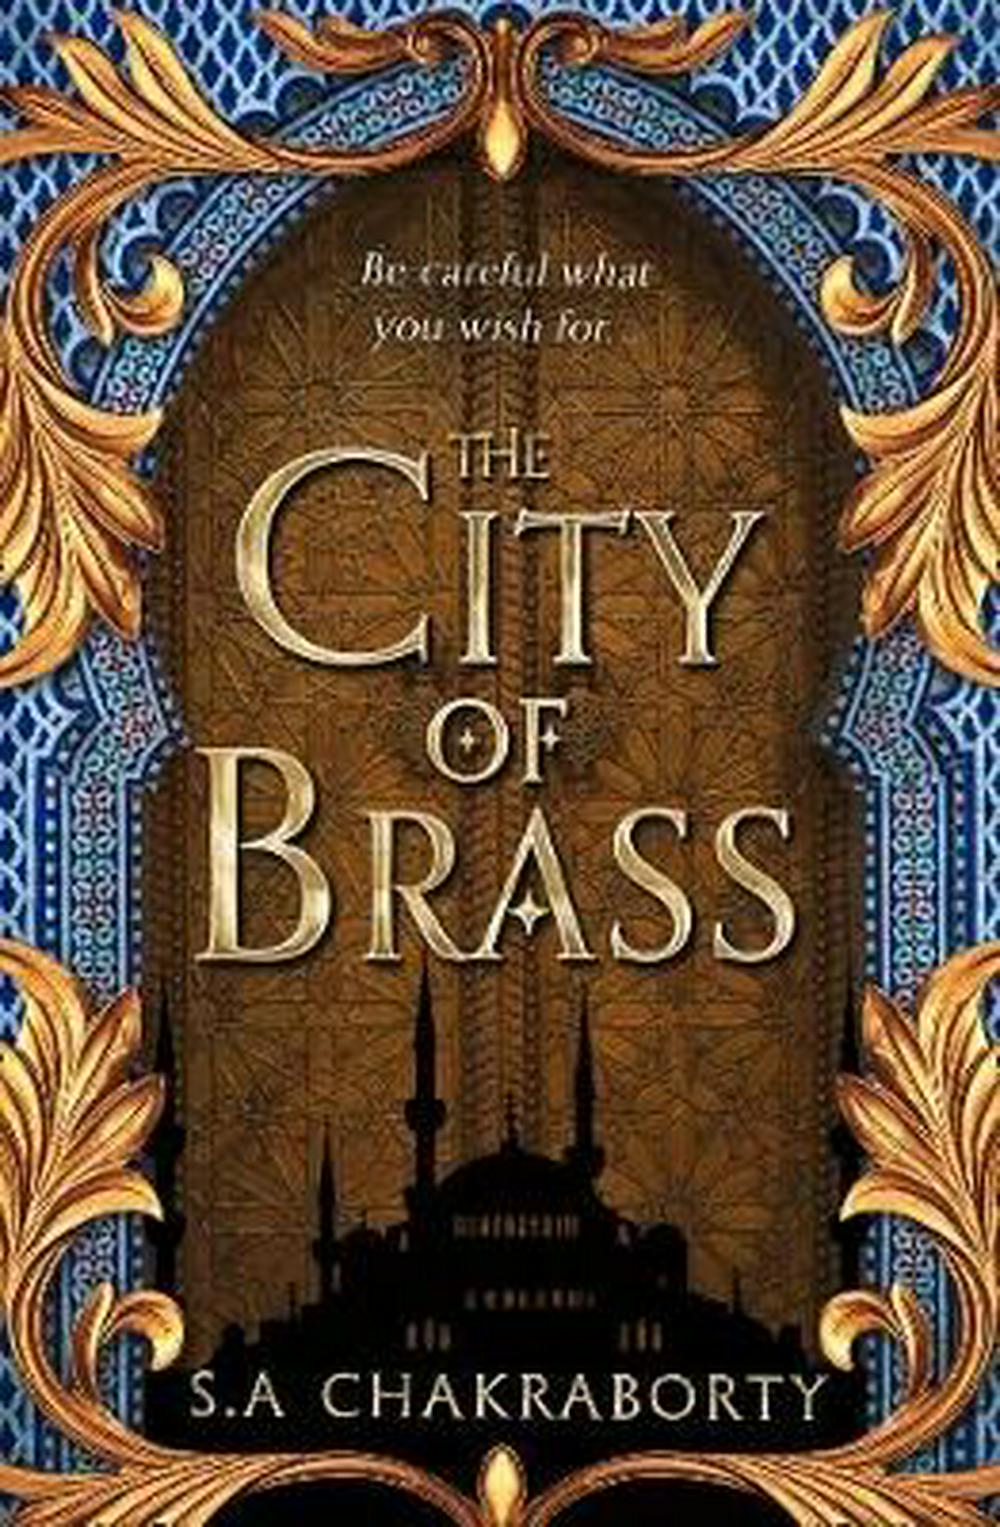 The City of Brass by S. A. Chakraborty, ISBN: 9780008239404